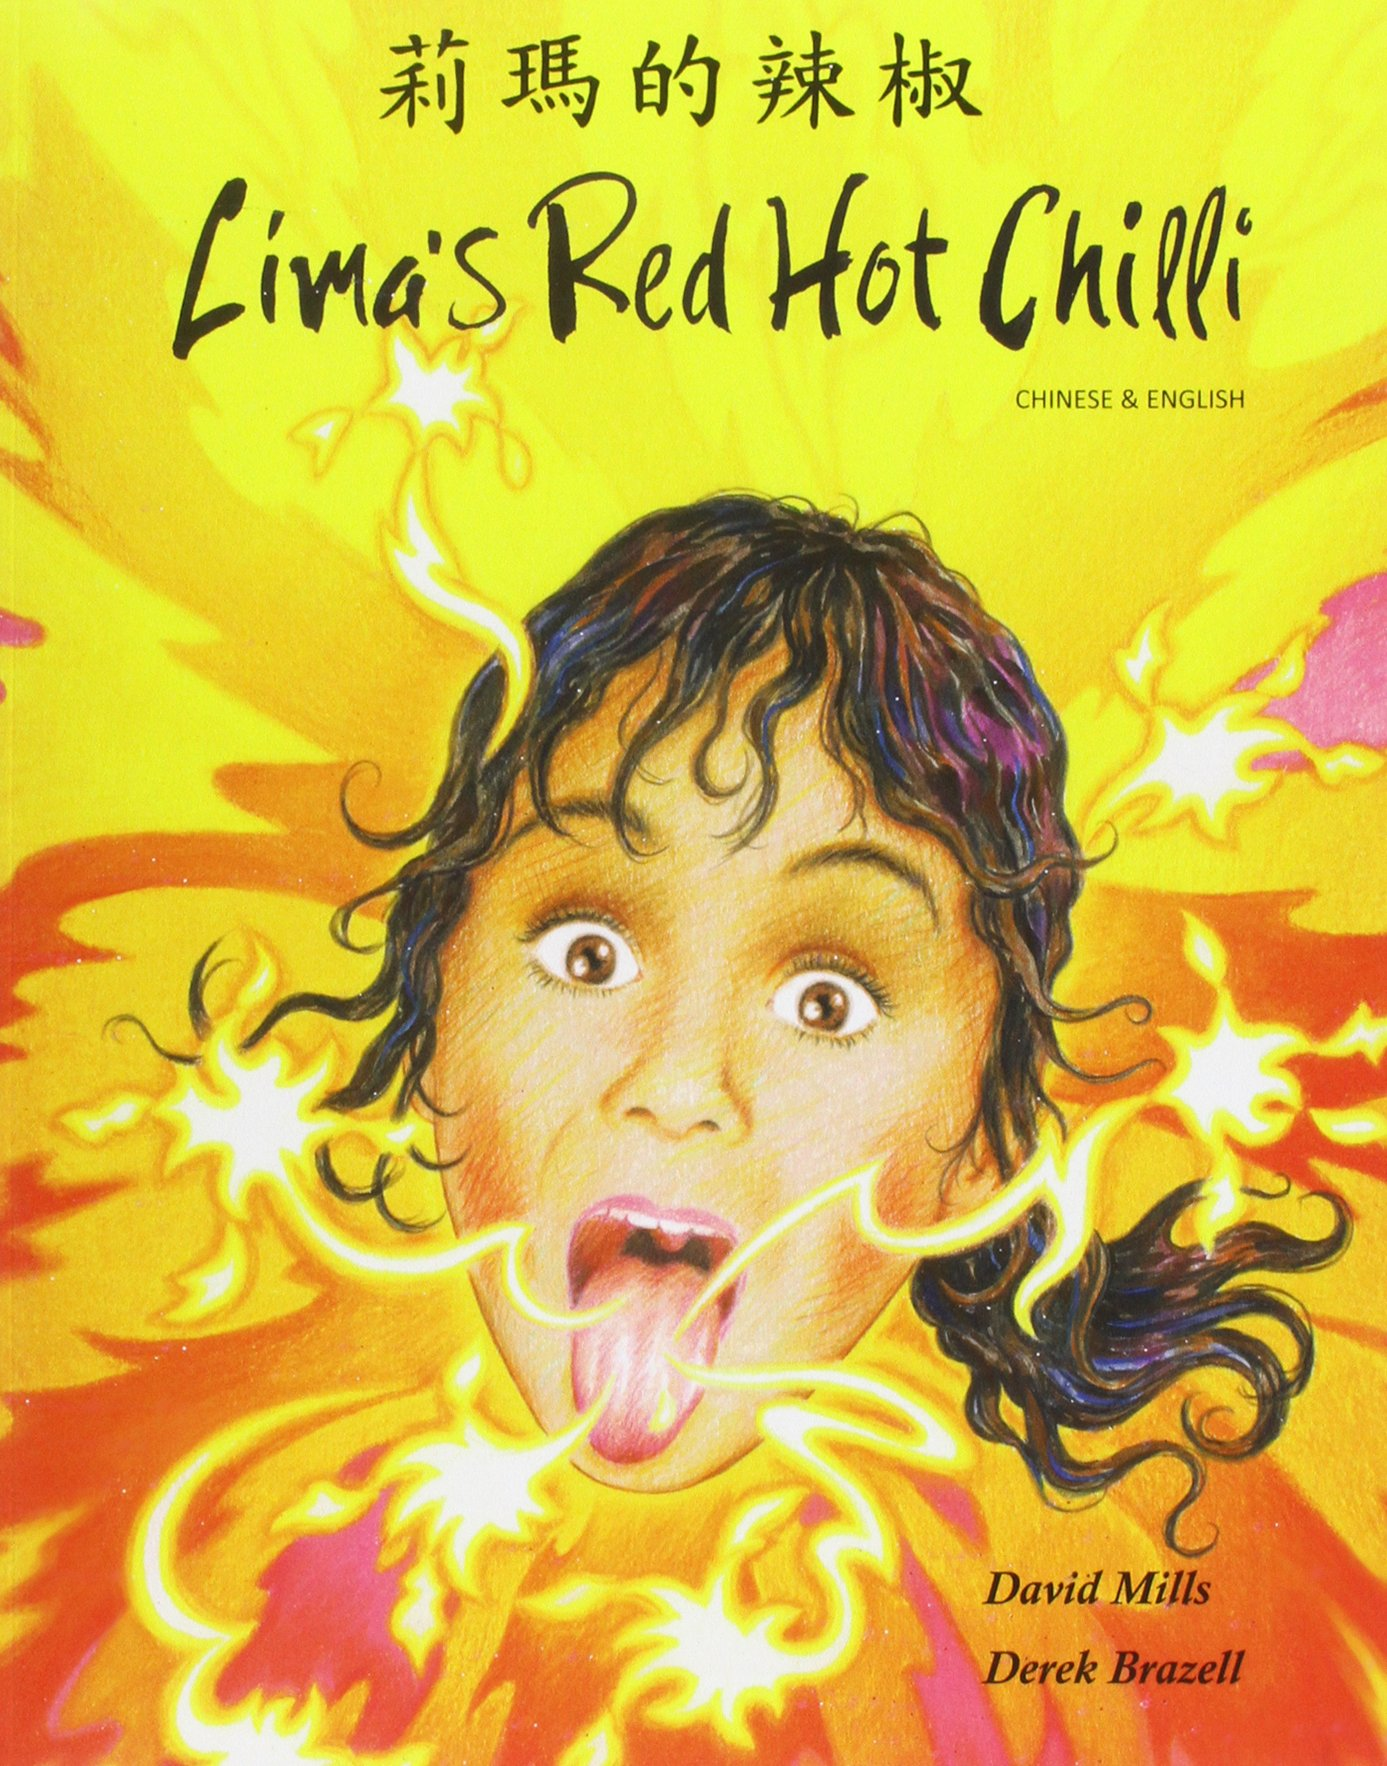 Lima's Red Hot Chilli in Chinese and English - David Mills